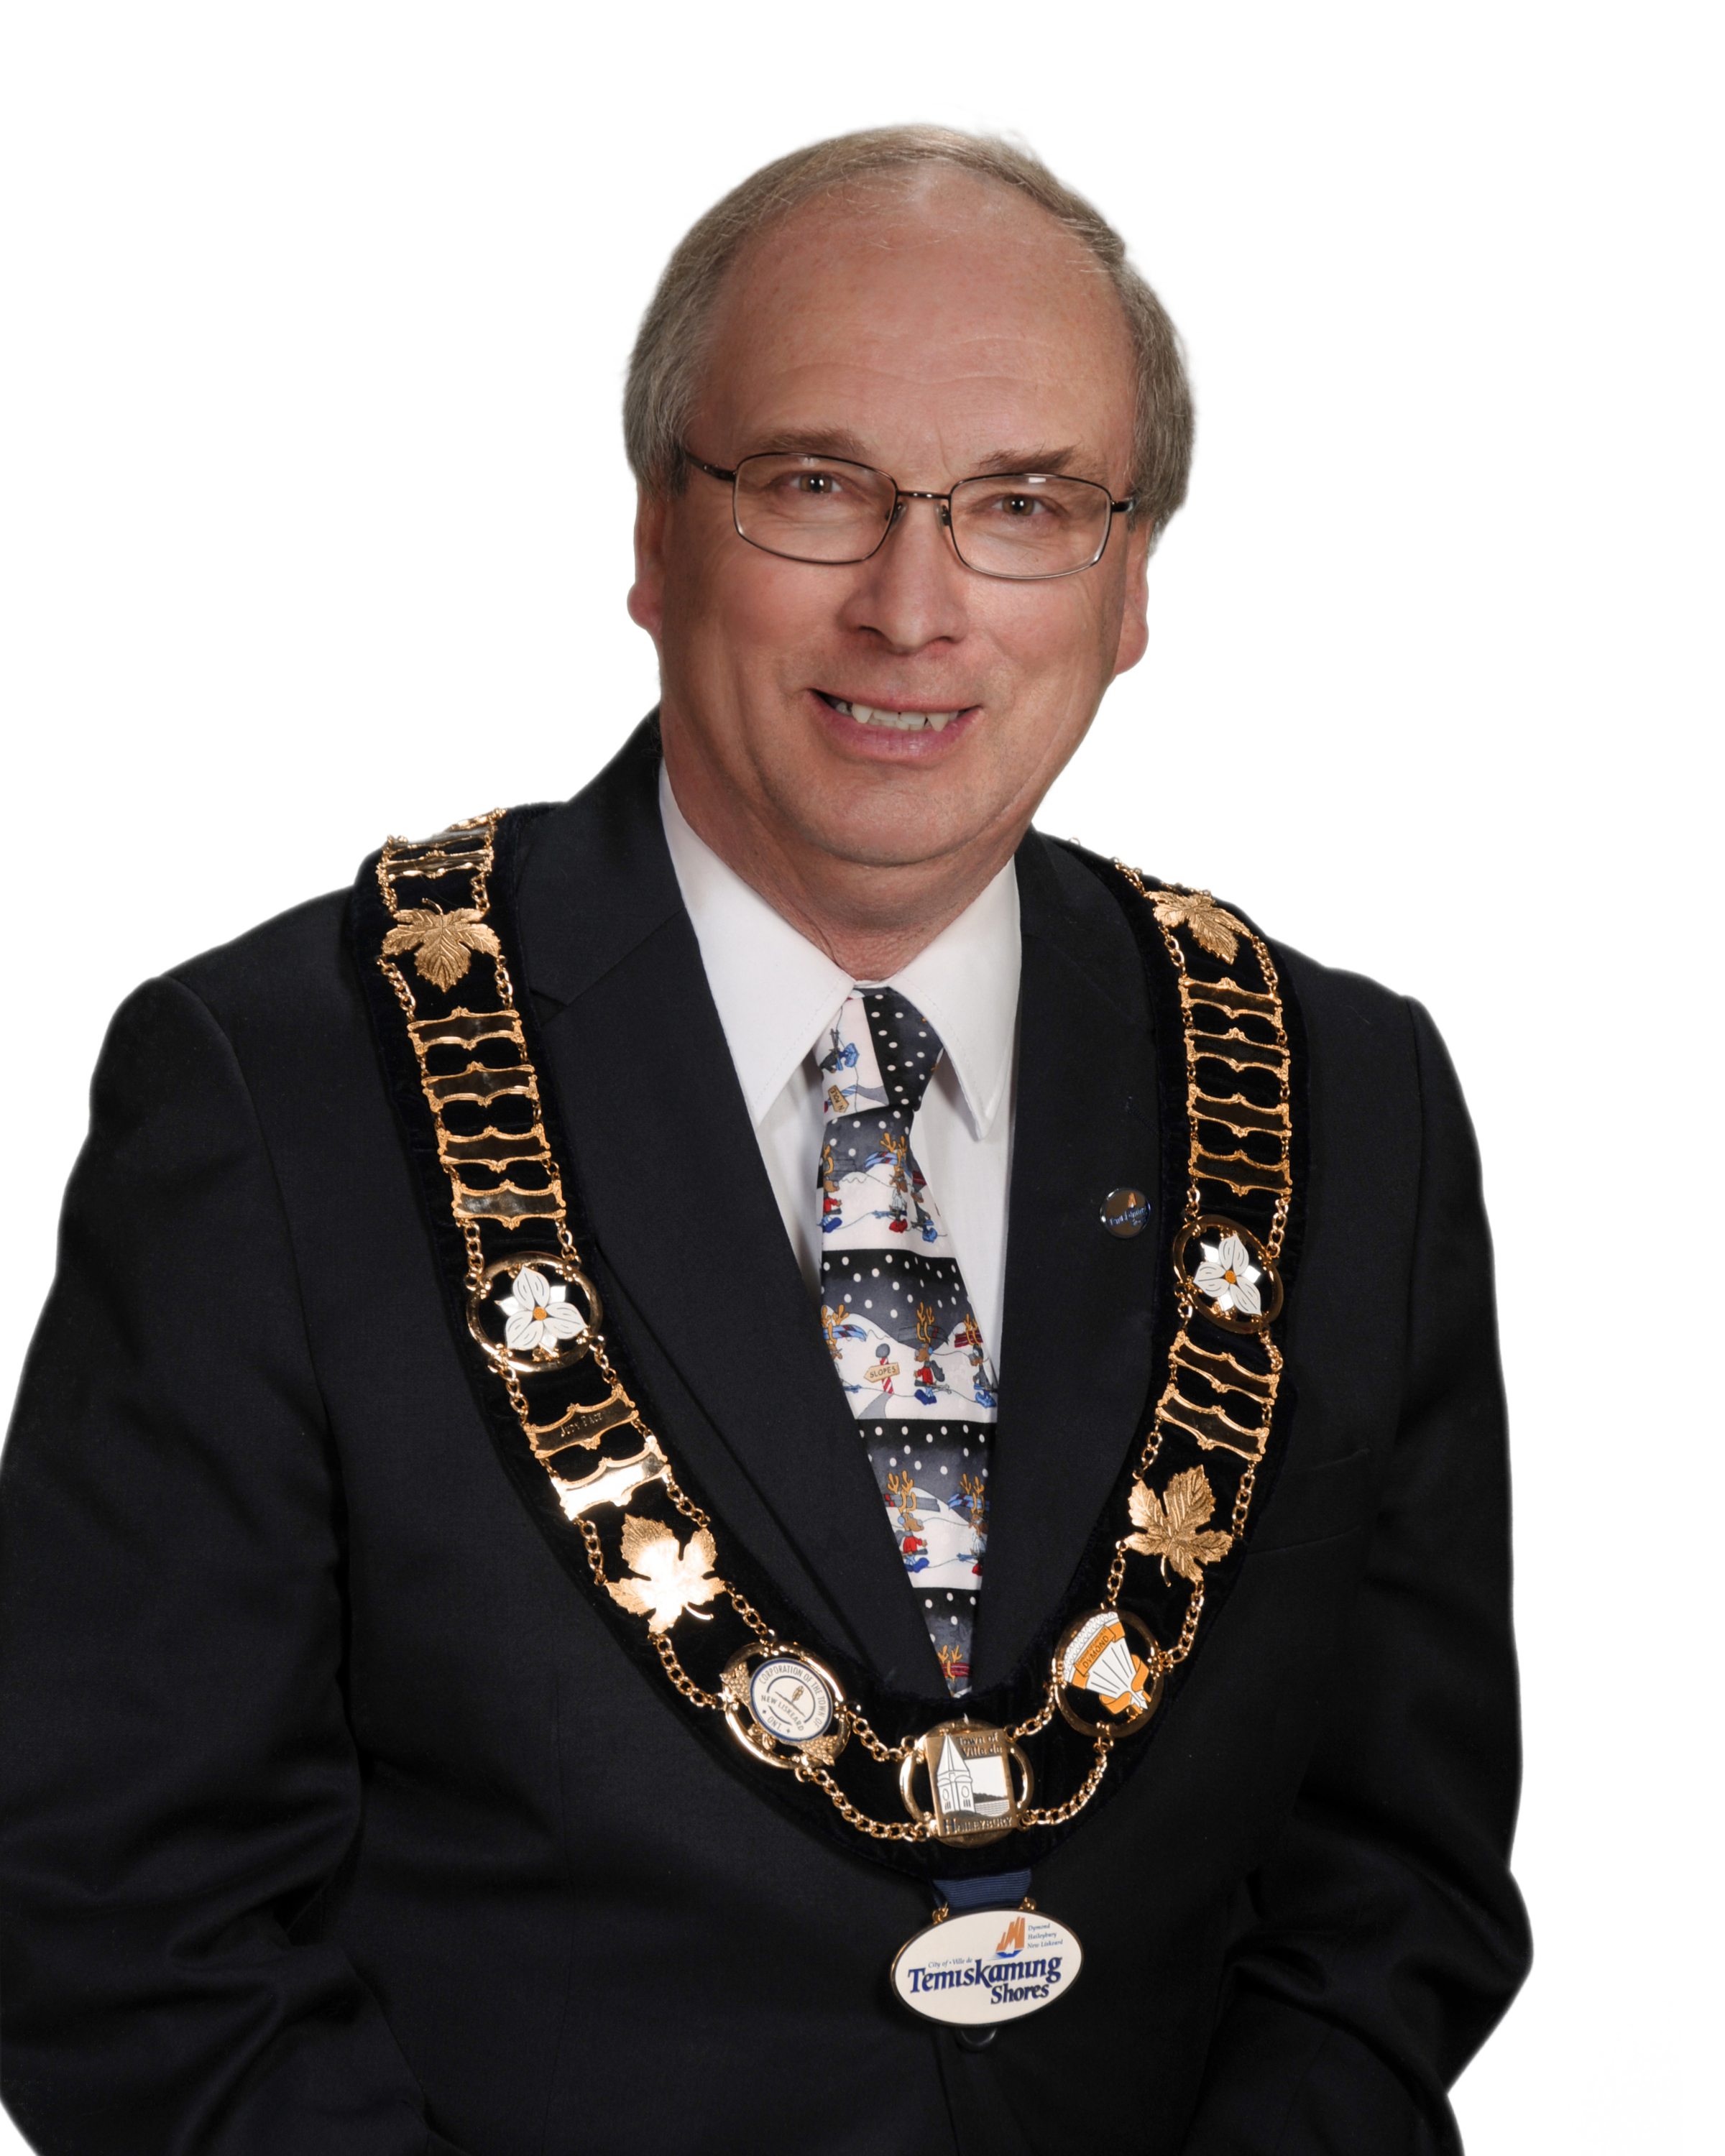 Mayor Carman Kidd